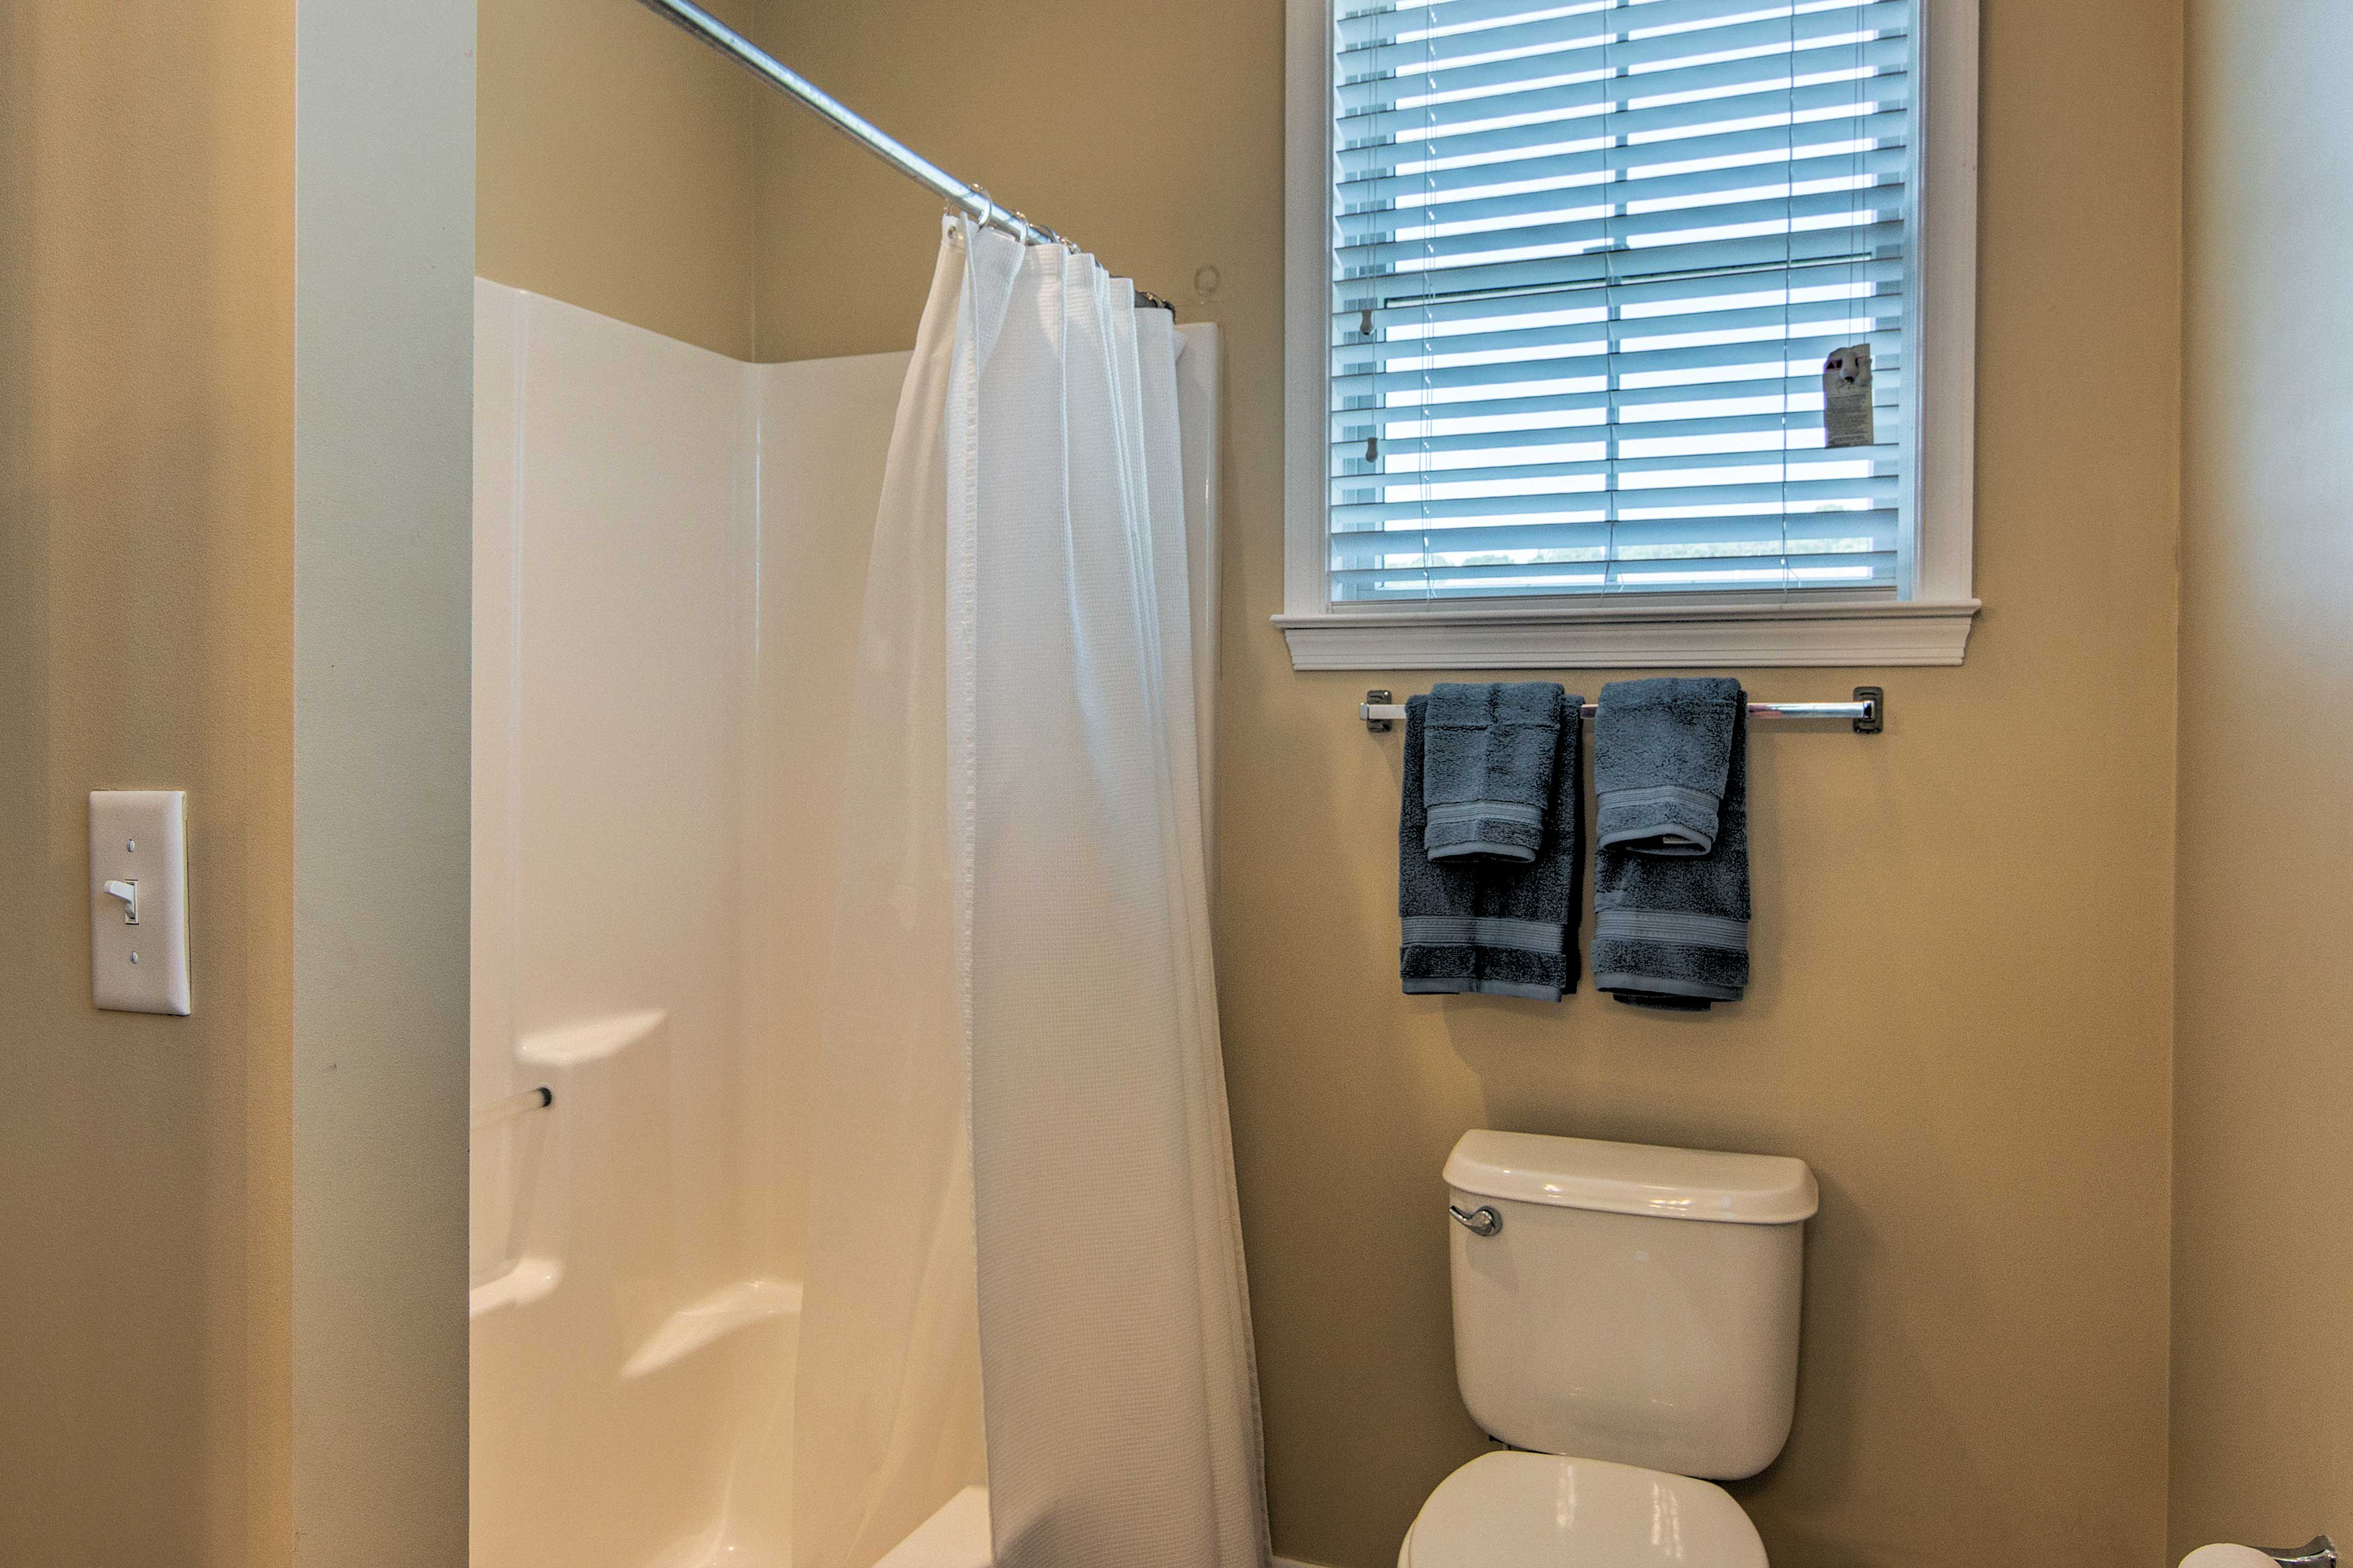 Rinse your worries away in the shower/tub combo full bathroom.